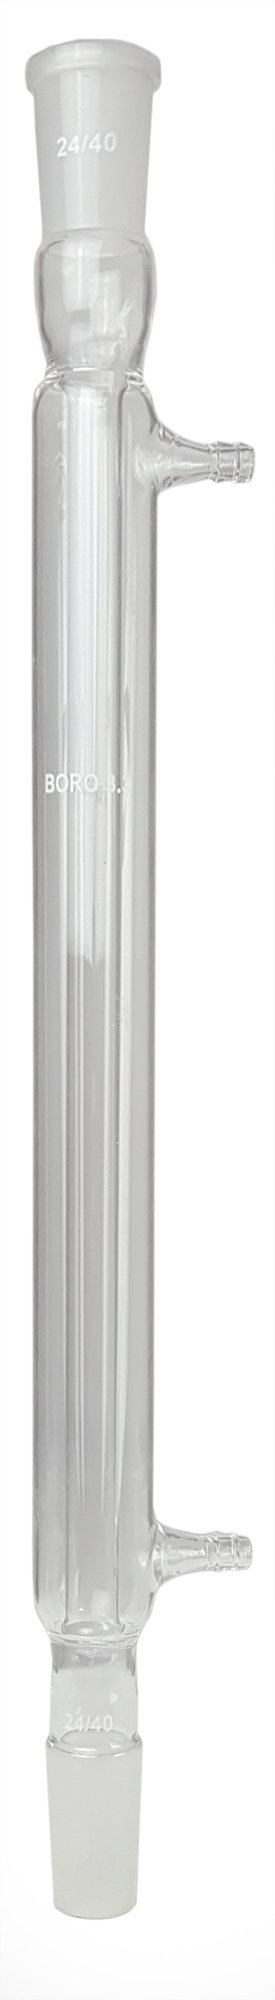 GSC International CW300MM-24/40 Borosilicate West Condenser, Ground Joints 24/40, 300 mm